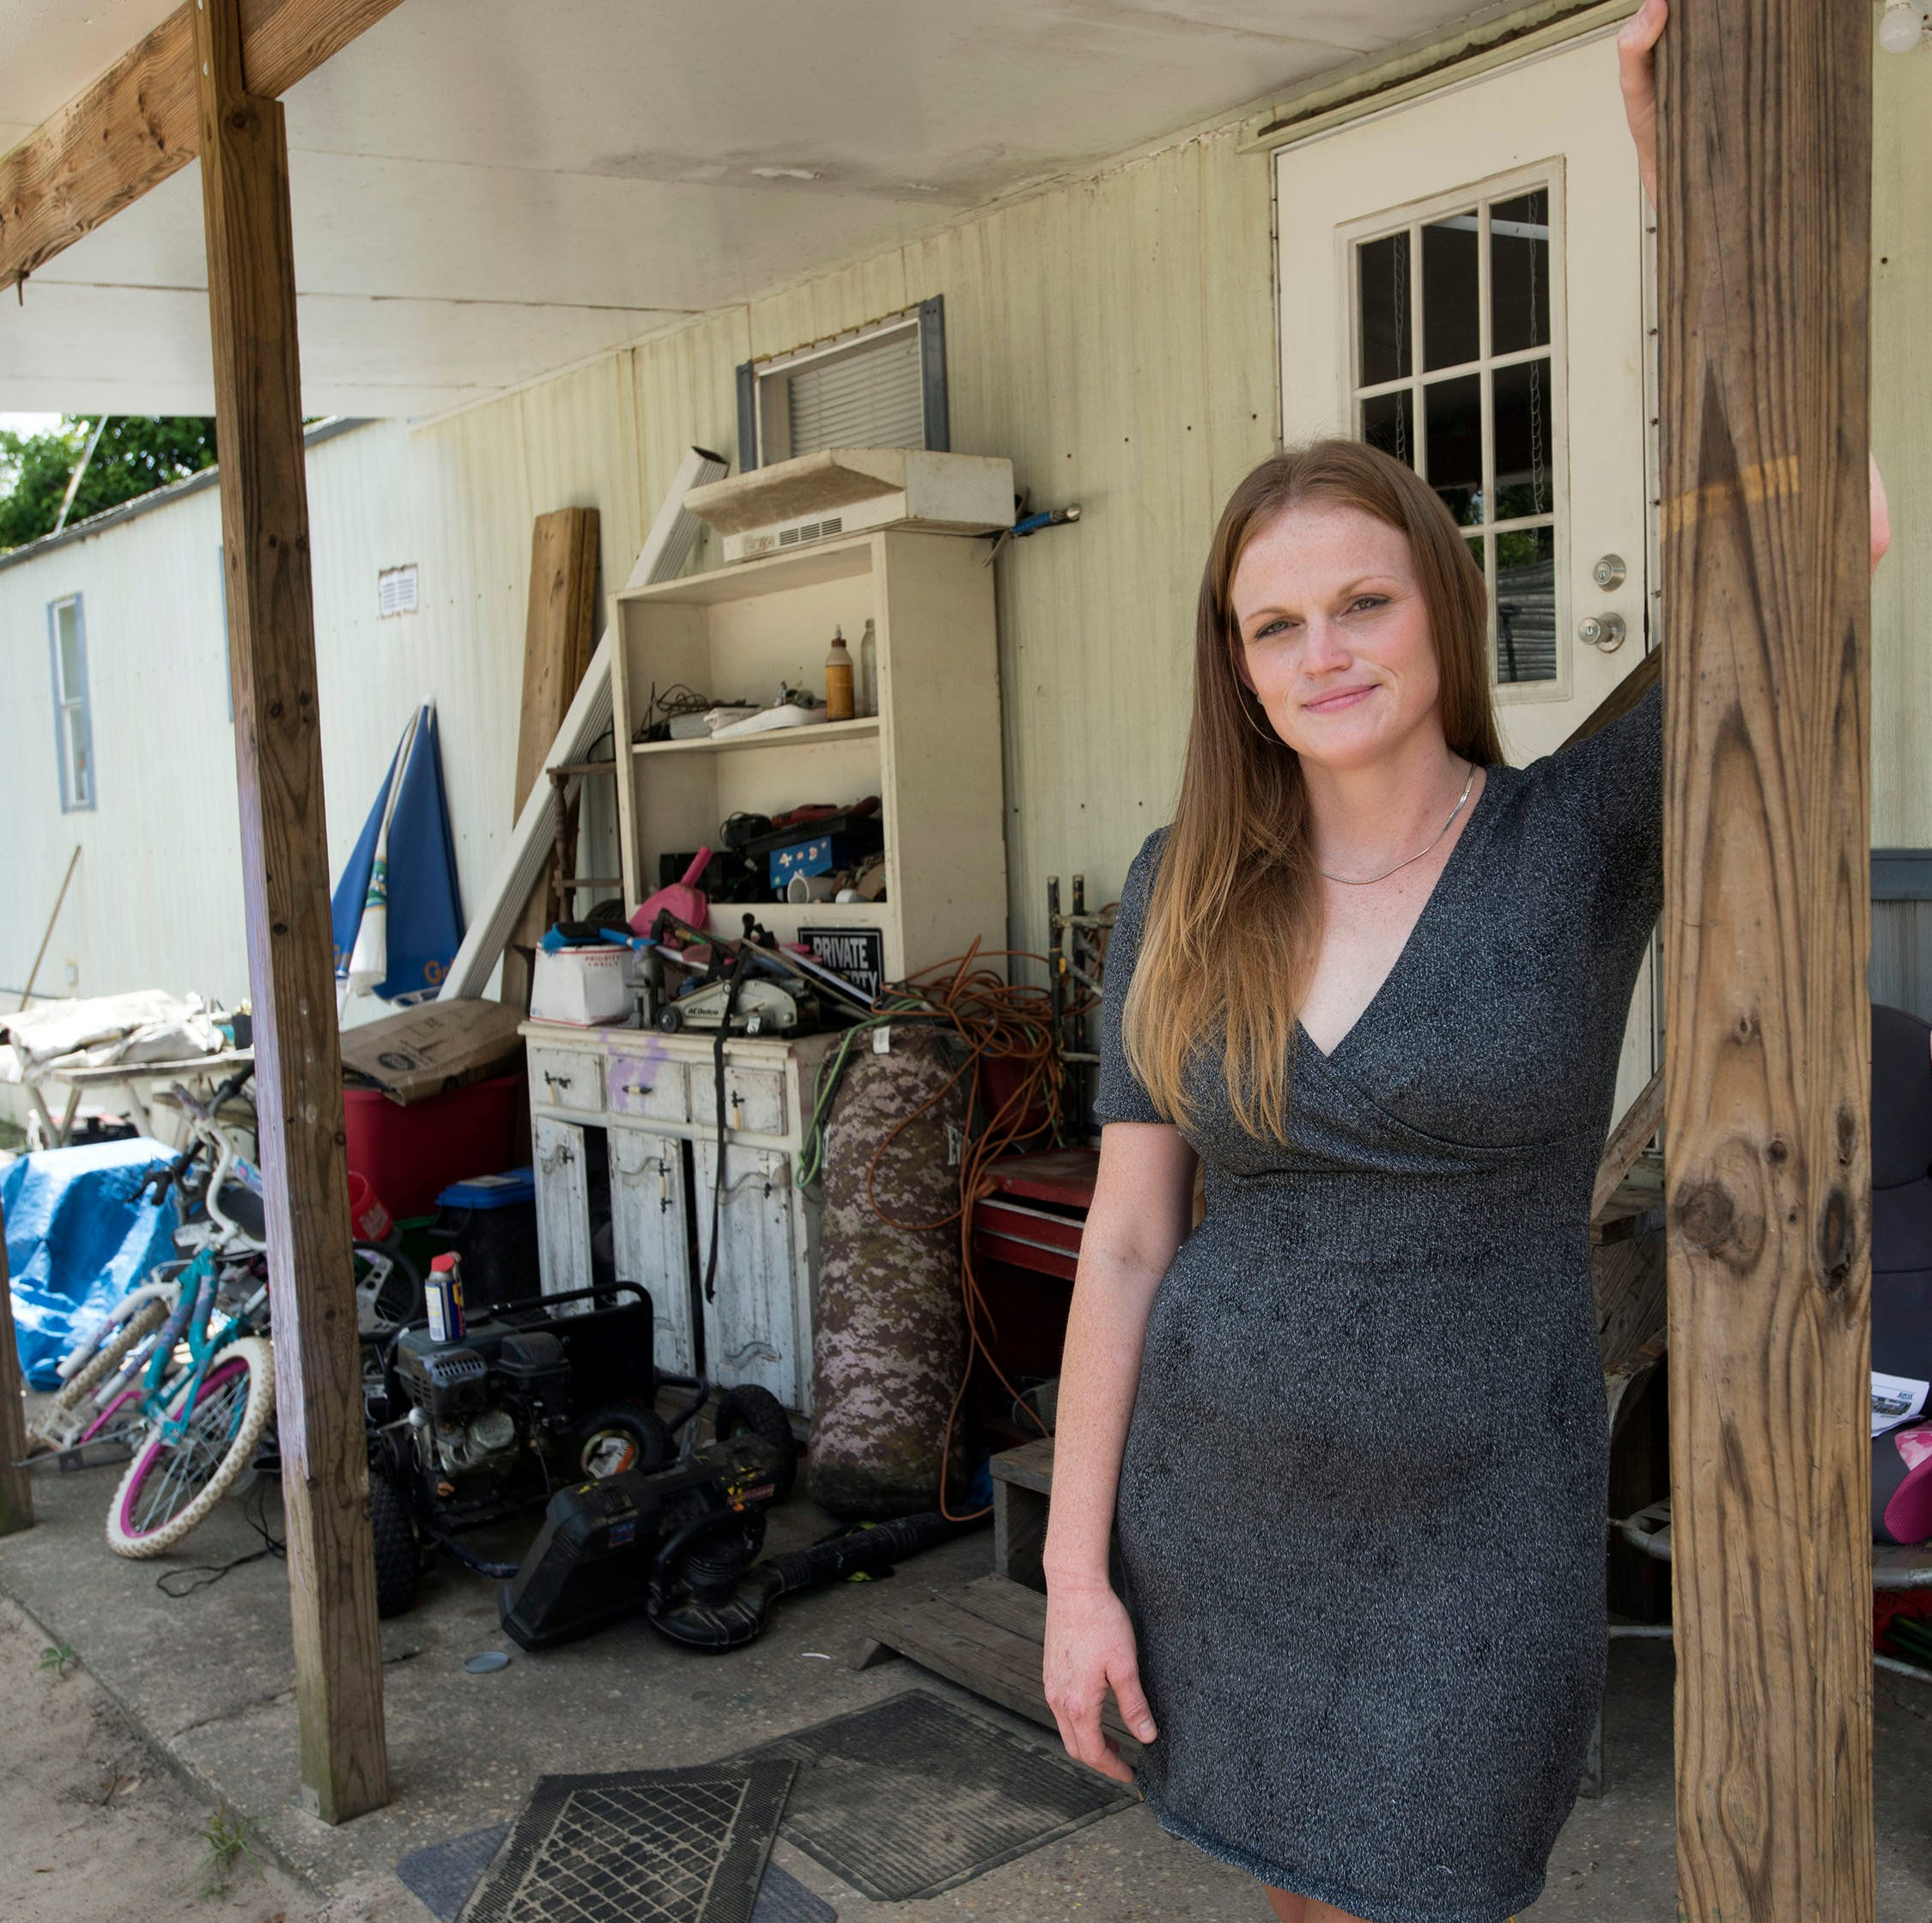 Evicted tenants of Flamingo Park may be owed more time, attorneys say